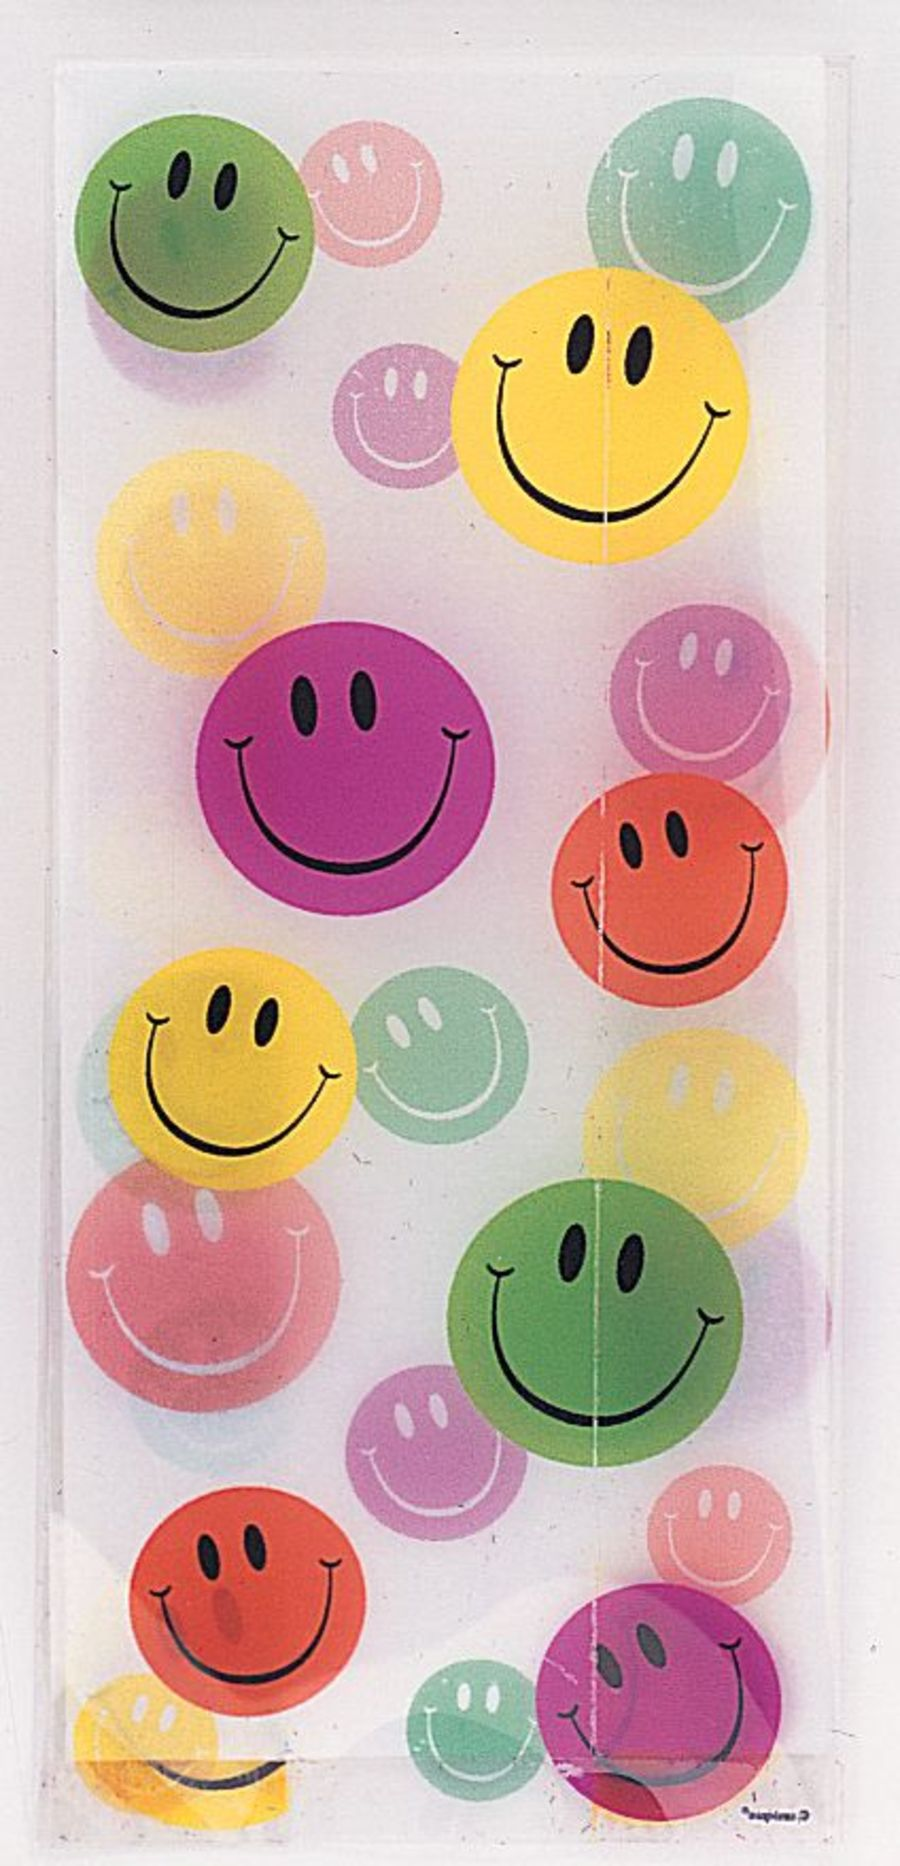 Smiley Face Cello Bags - Pack of 20